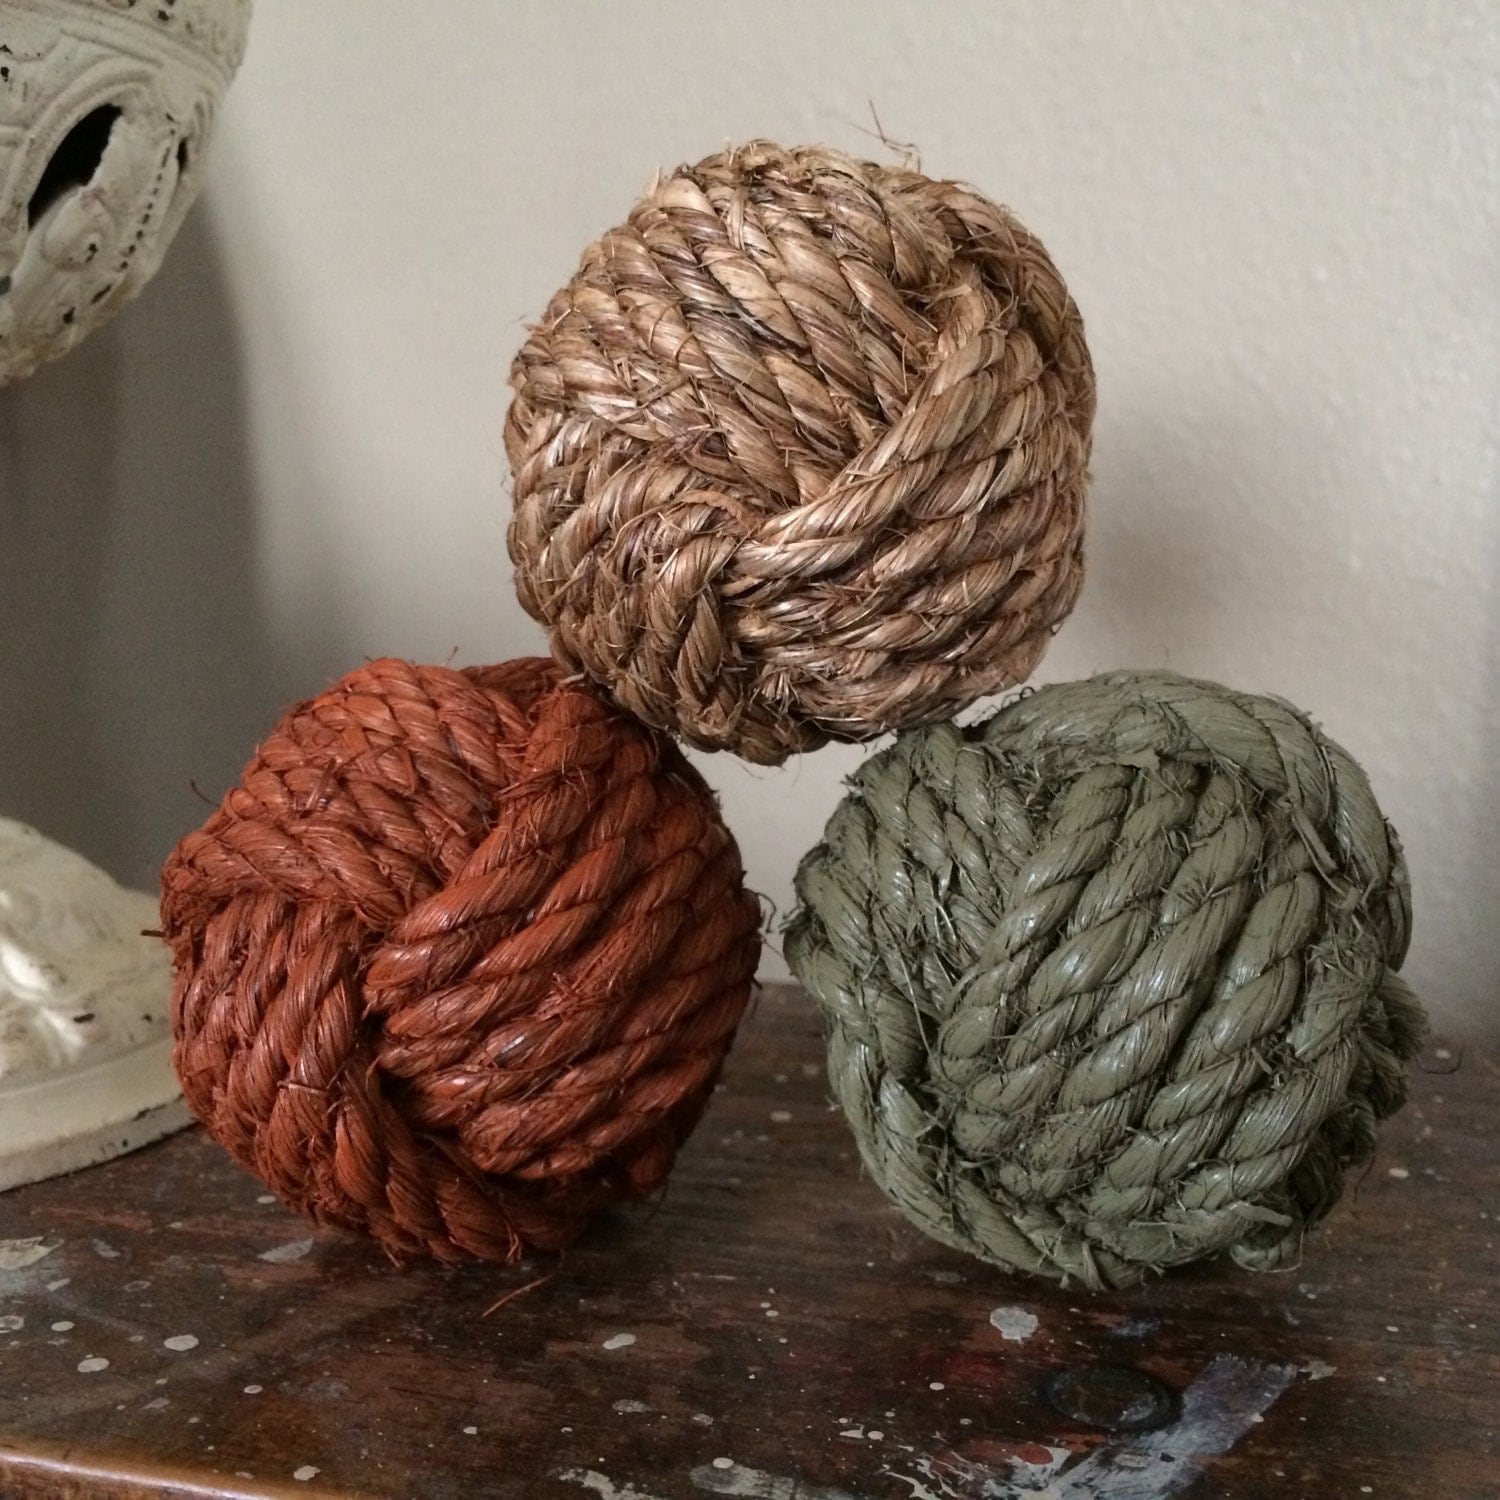 decorative rope knot balls set of 3 bowl fillers rope knot